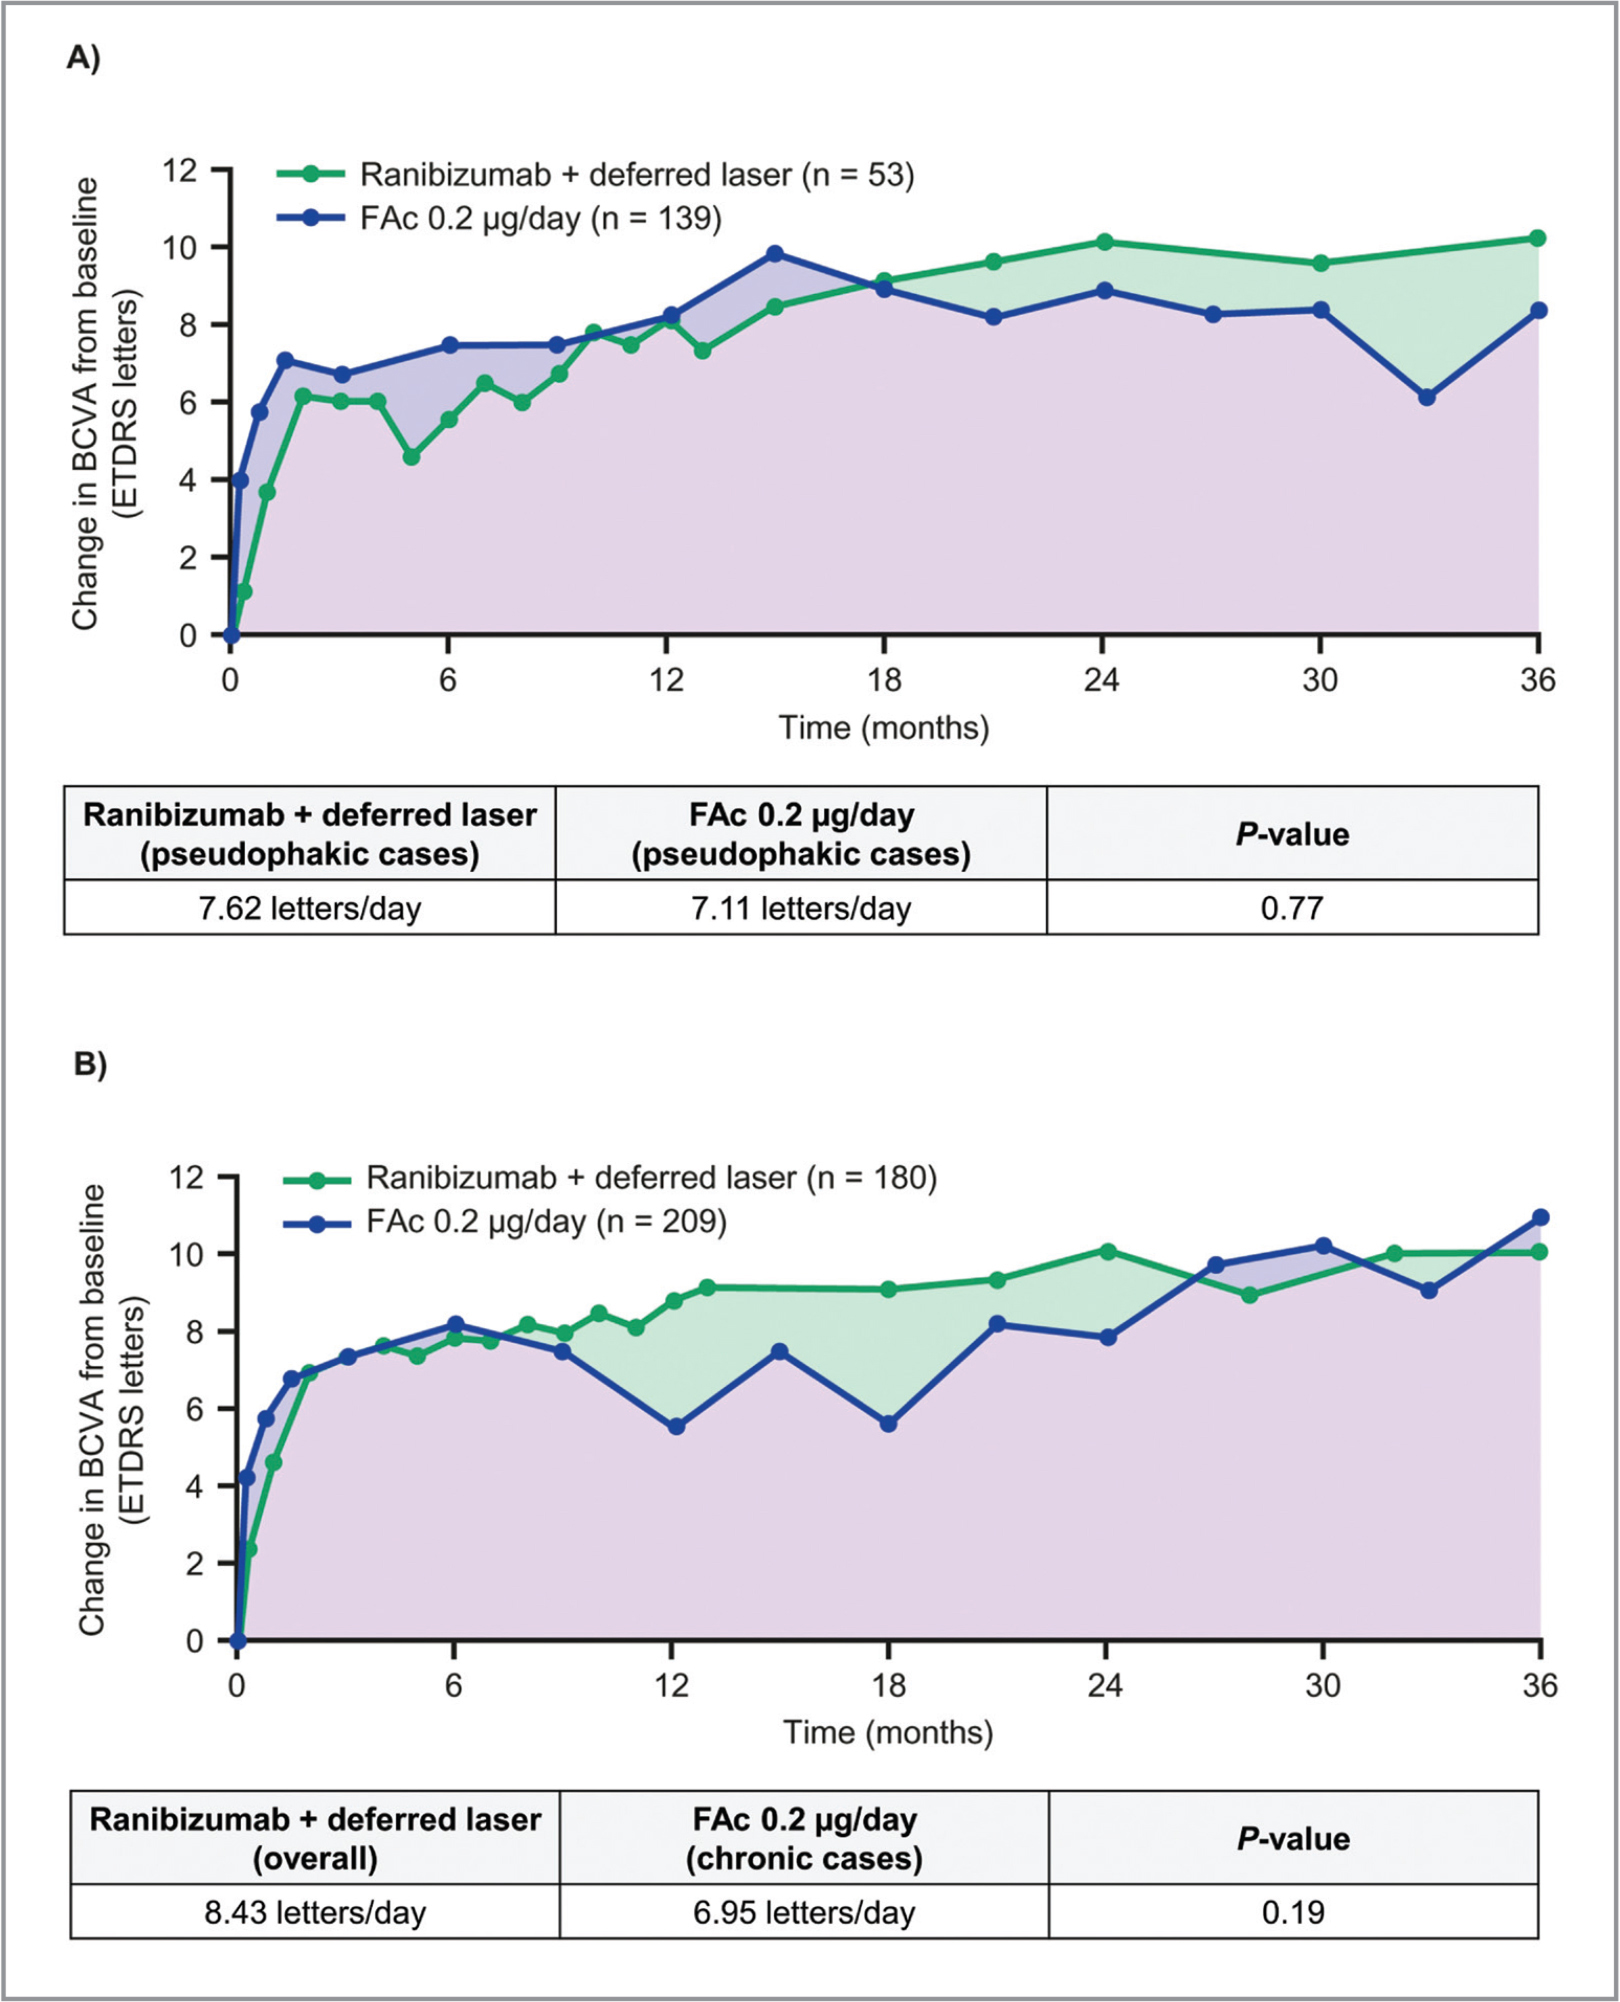 Summary of BCVA letter score and illustrative comparison of AUC from mean BCVA scores for FAc 0.2 μg/day and ranibizumab plus deferred laser: (A) Pseudophakic cases; (B) Chronic DME (DME duration ≥ 3 years) eyes and overall patient population. AUC = area under the curve; BCVA = best-corrected visual acuity; DME = diabetic macular edema; ETDRS = Early Treatment Diabetic Retinopathy Study; FAc = fluocinolone acetonide